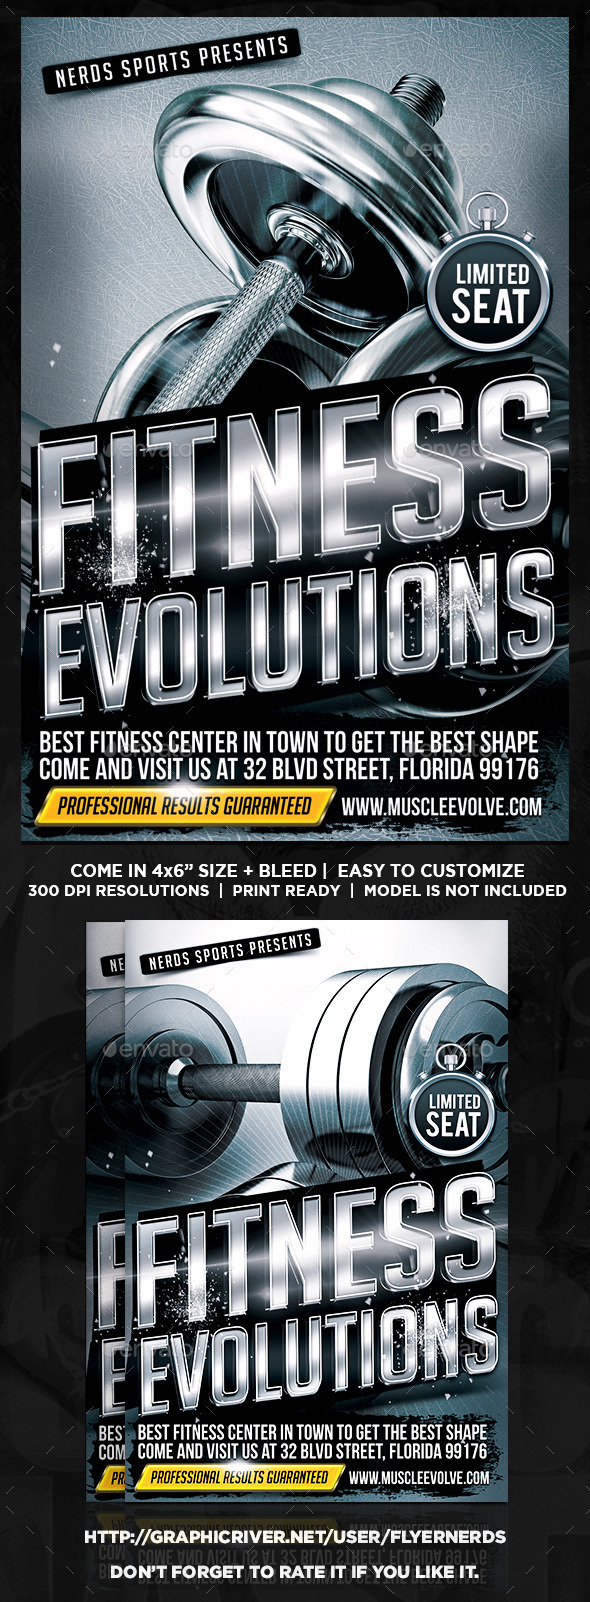 Fitness Evolutions Sports Flyer